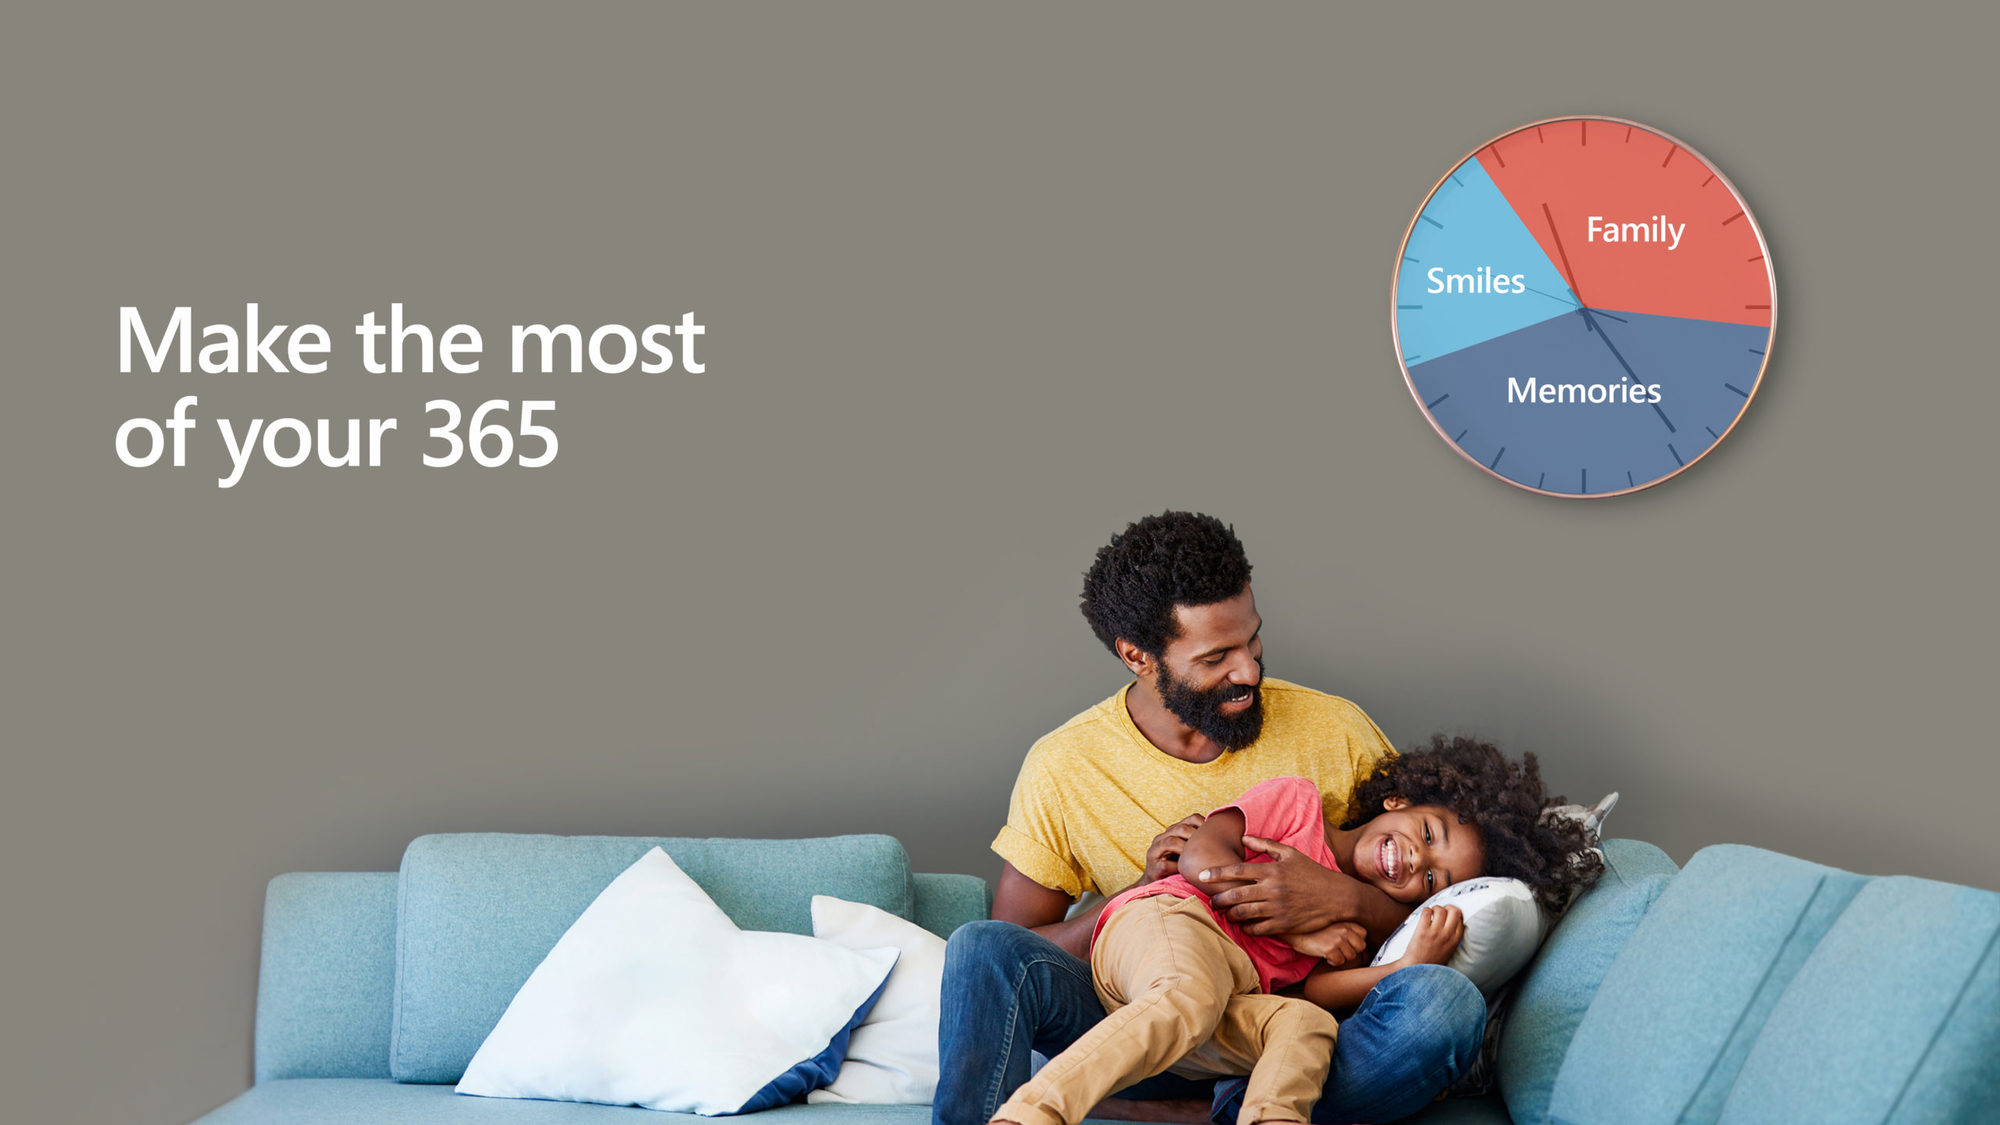 Introducing the new Microsoft 365 Personal and Family subscriptions MASTER_FAMILY_RGB_CROP_Copy-scaled.jpg